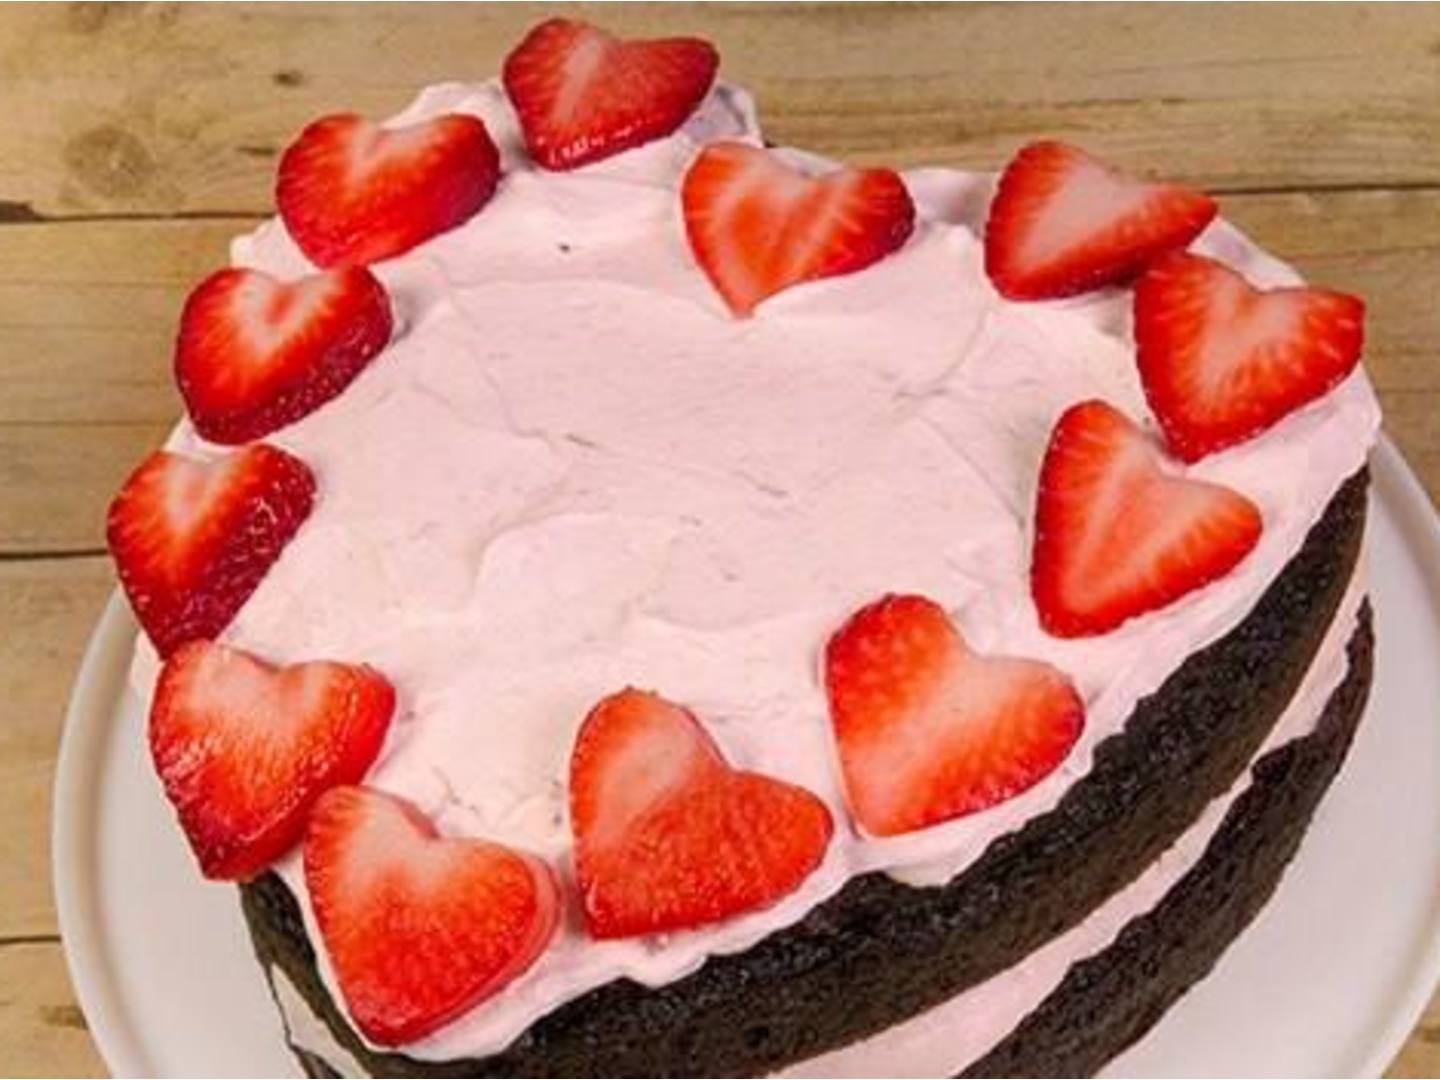 Strawberry Heart Ice Cream Cake